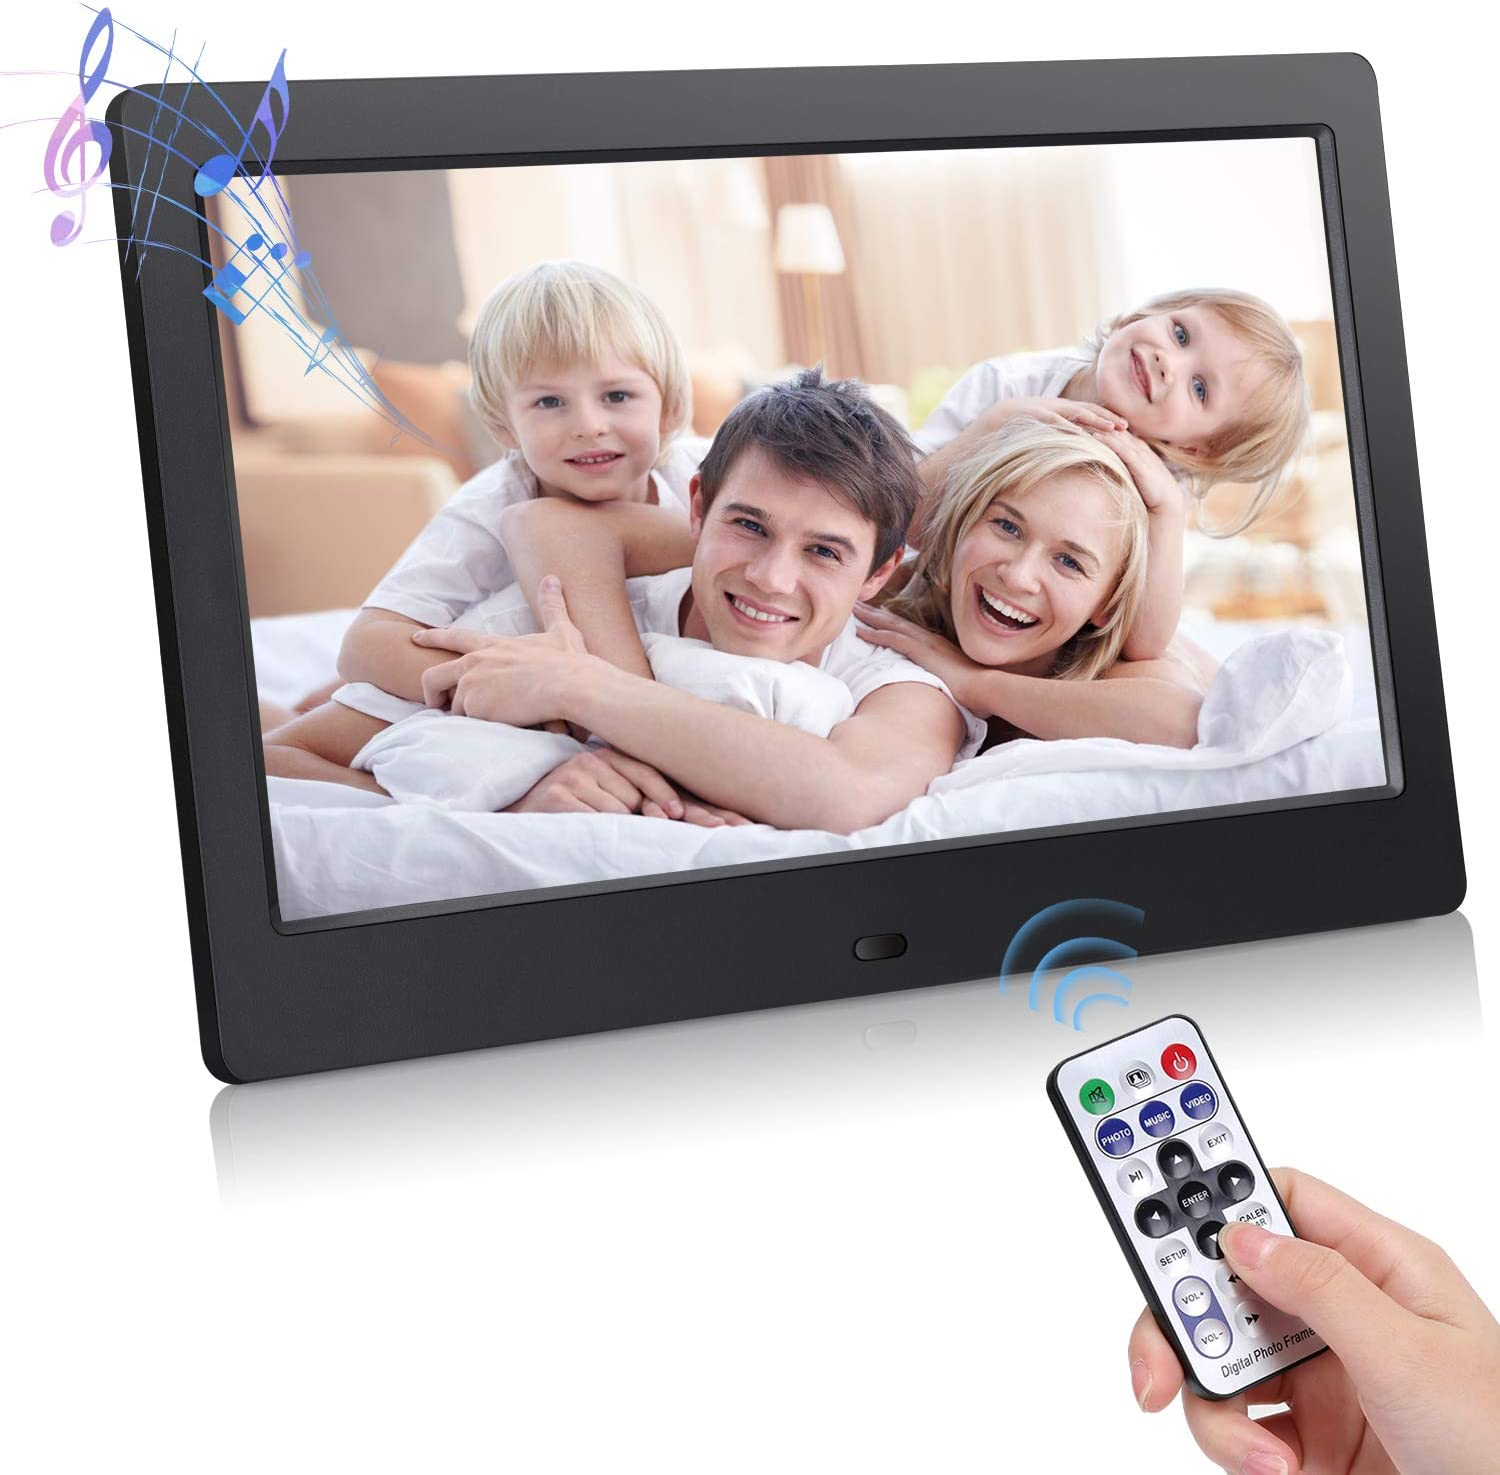 800 x 600 Resolution Remote Control Included,Black LLC-POWER 10-inch Digital Photo Frame Support Photo//Music//Video//Calendar with Touch Button and Built-in Speakers